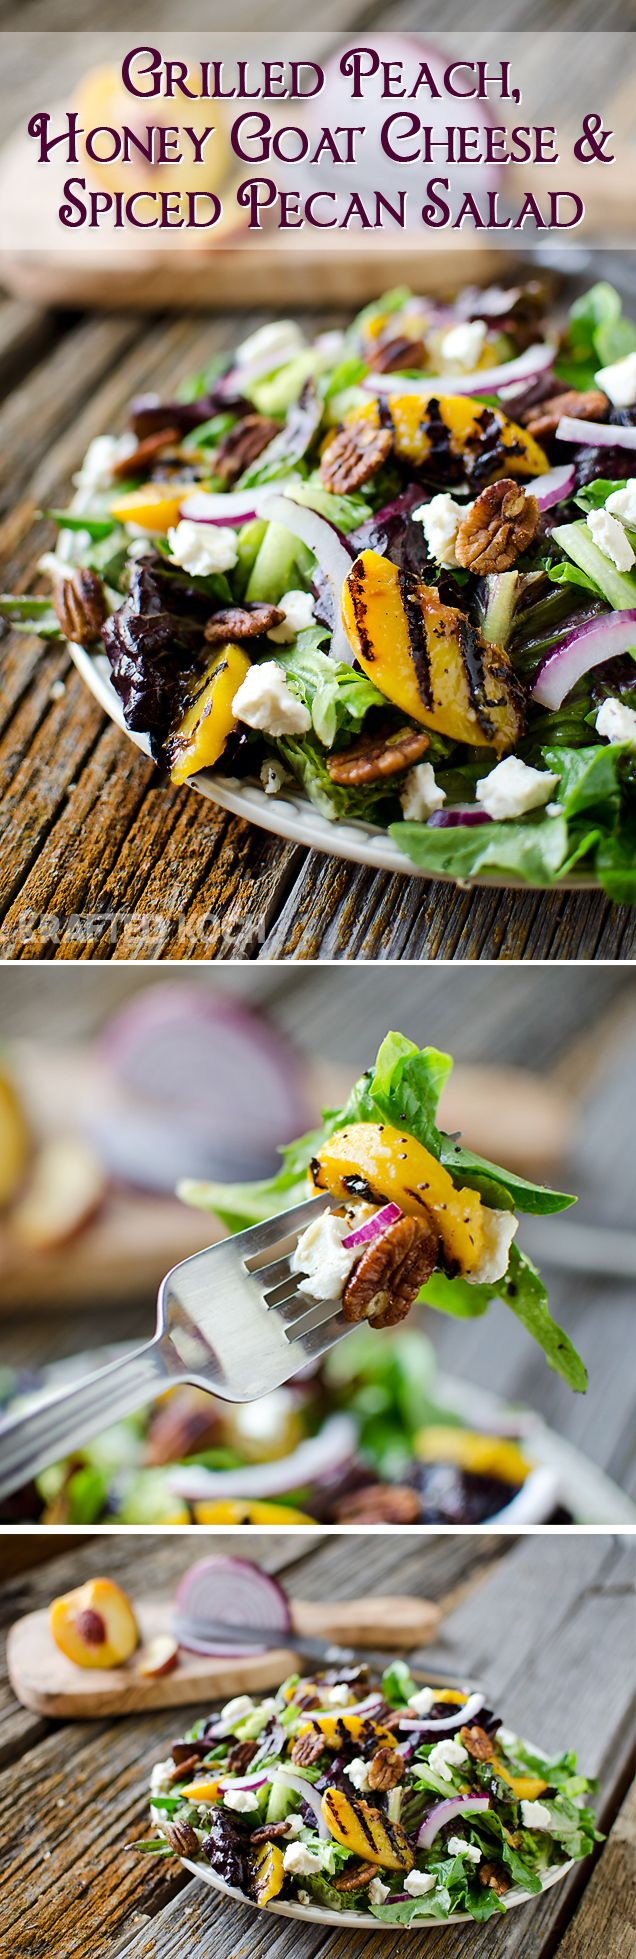 Grilled Peach, Honey Goat Cheese & Spiced Pecan Salad - Krafted Koch... omg i need this every day pf my life